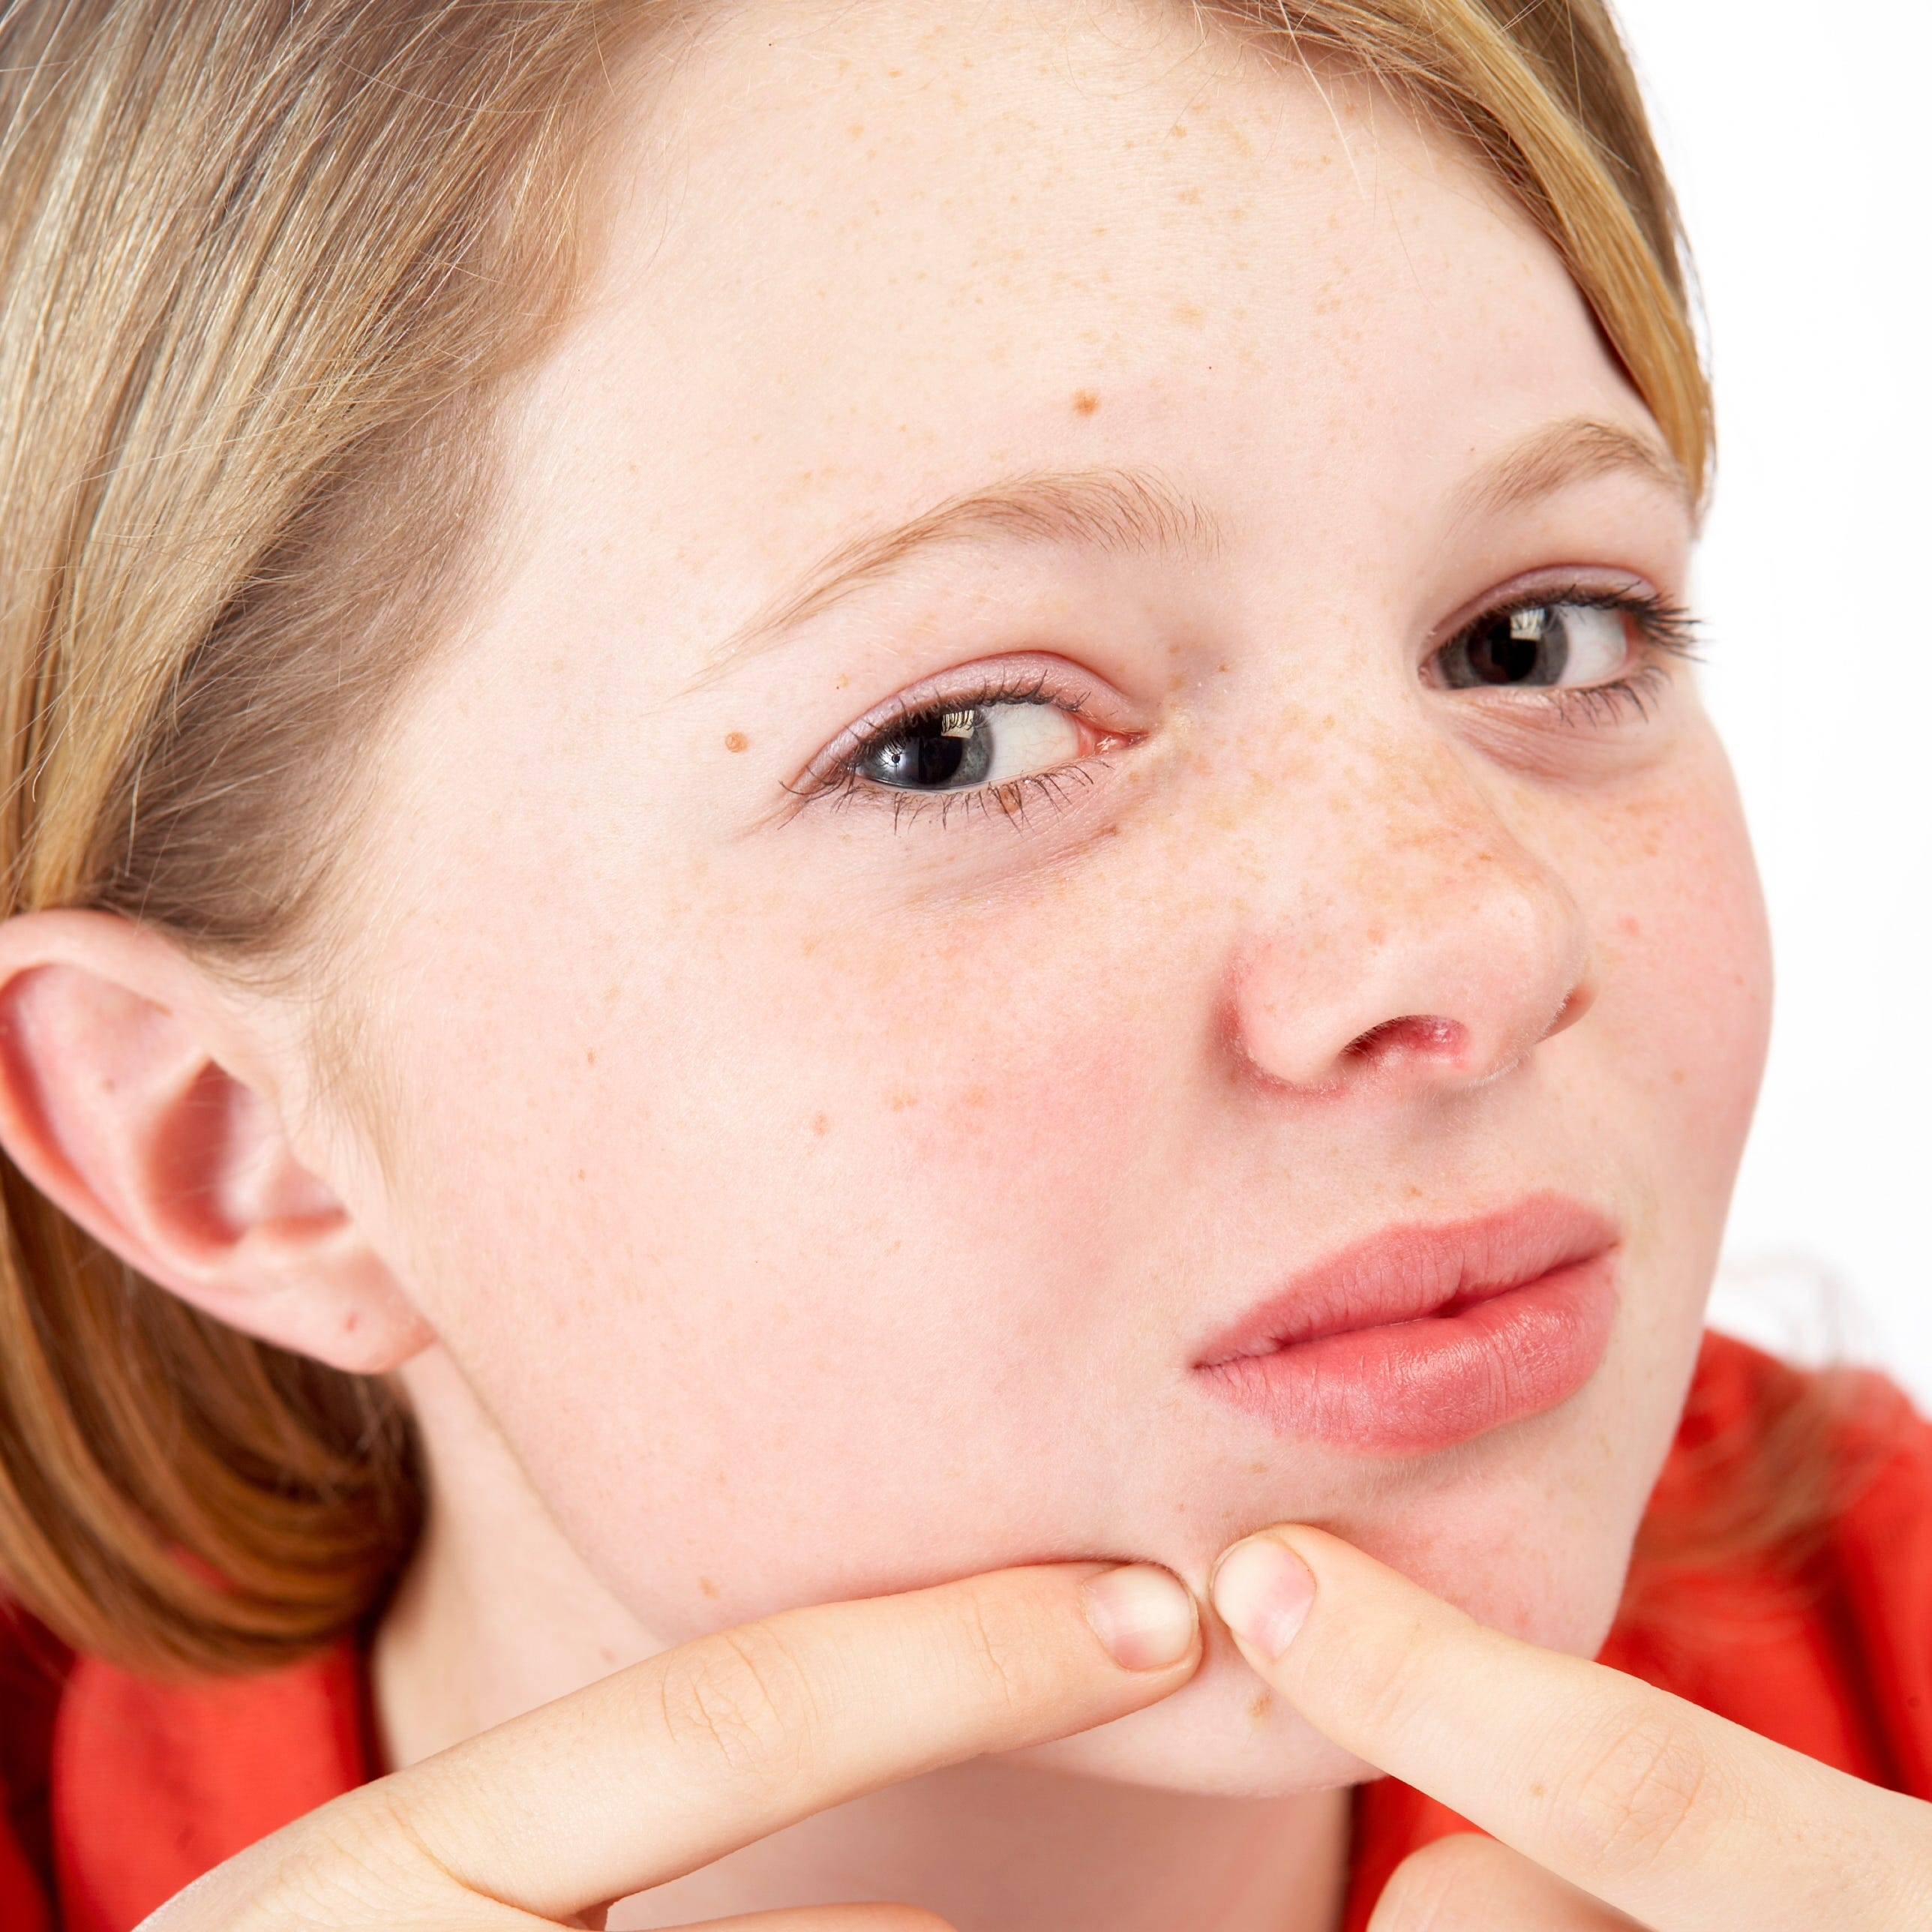 Zits happen: Guide your kids through this rough patch